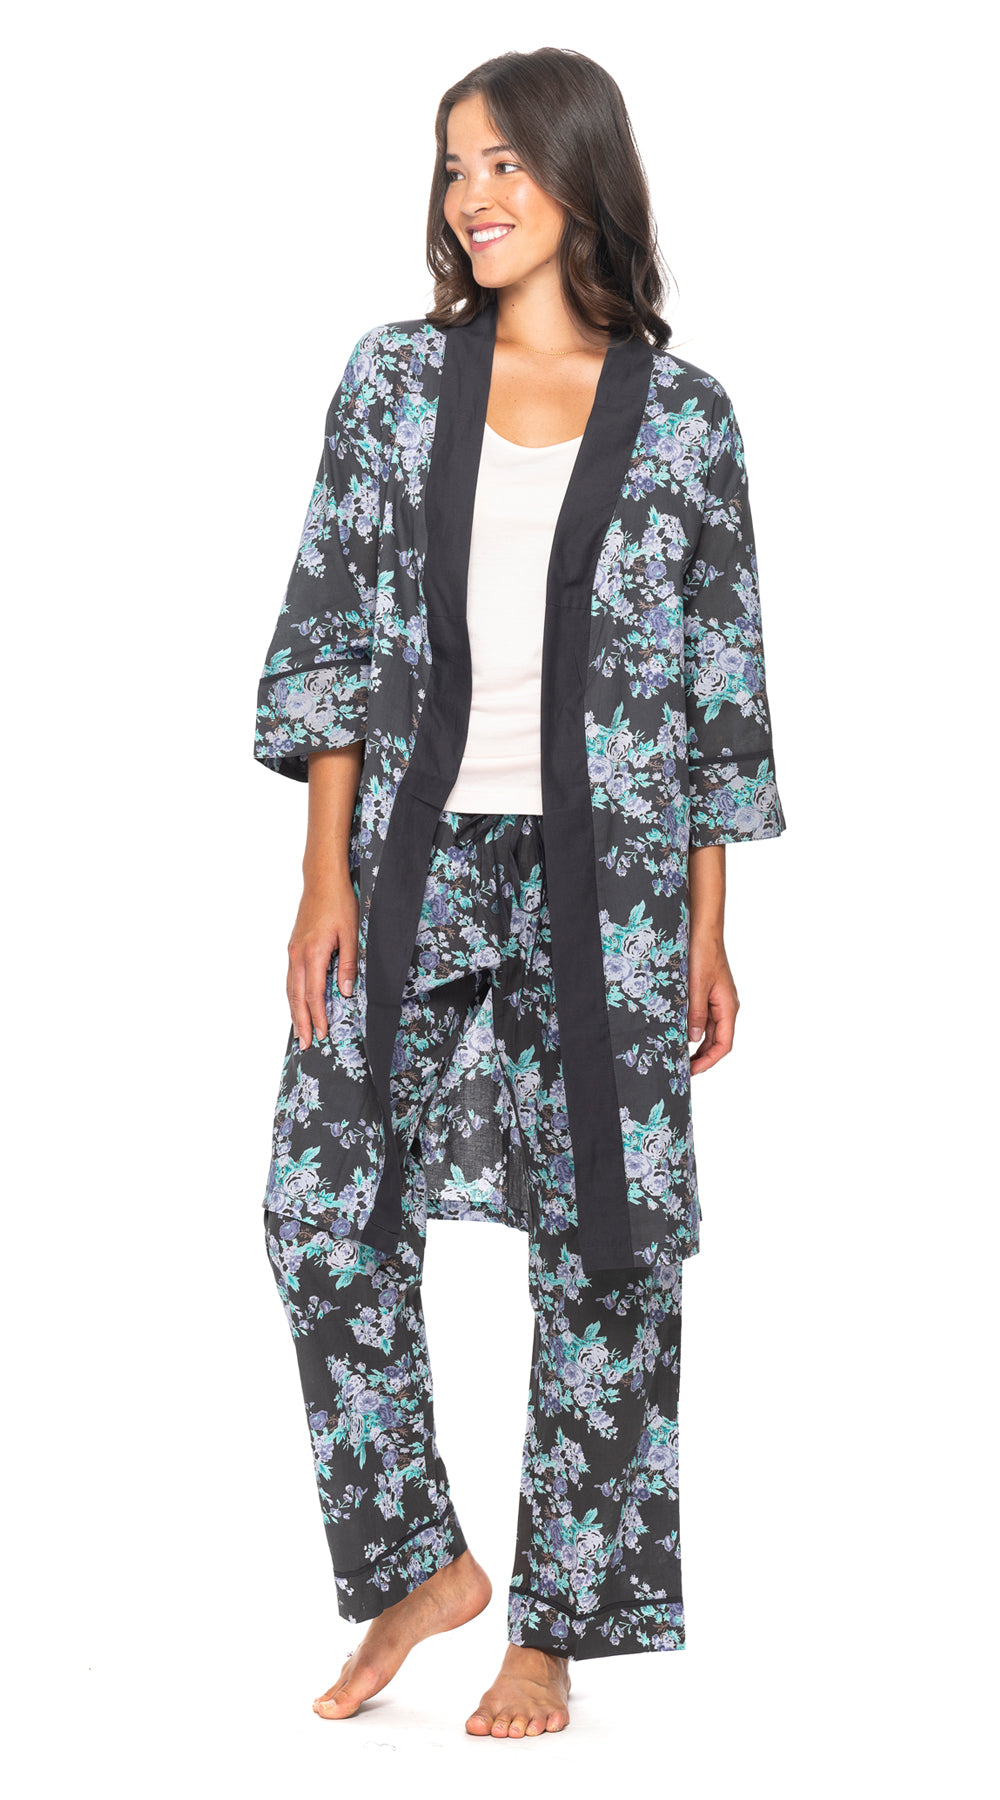 Organic Cotton Bathrobe+Pants SET - 4 PRINTS!